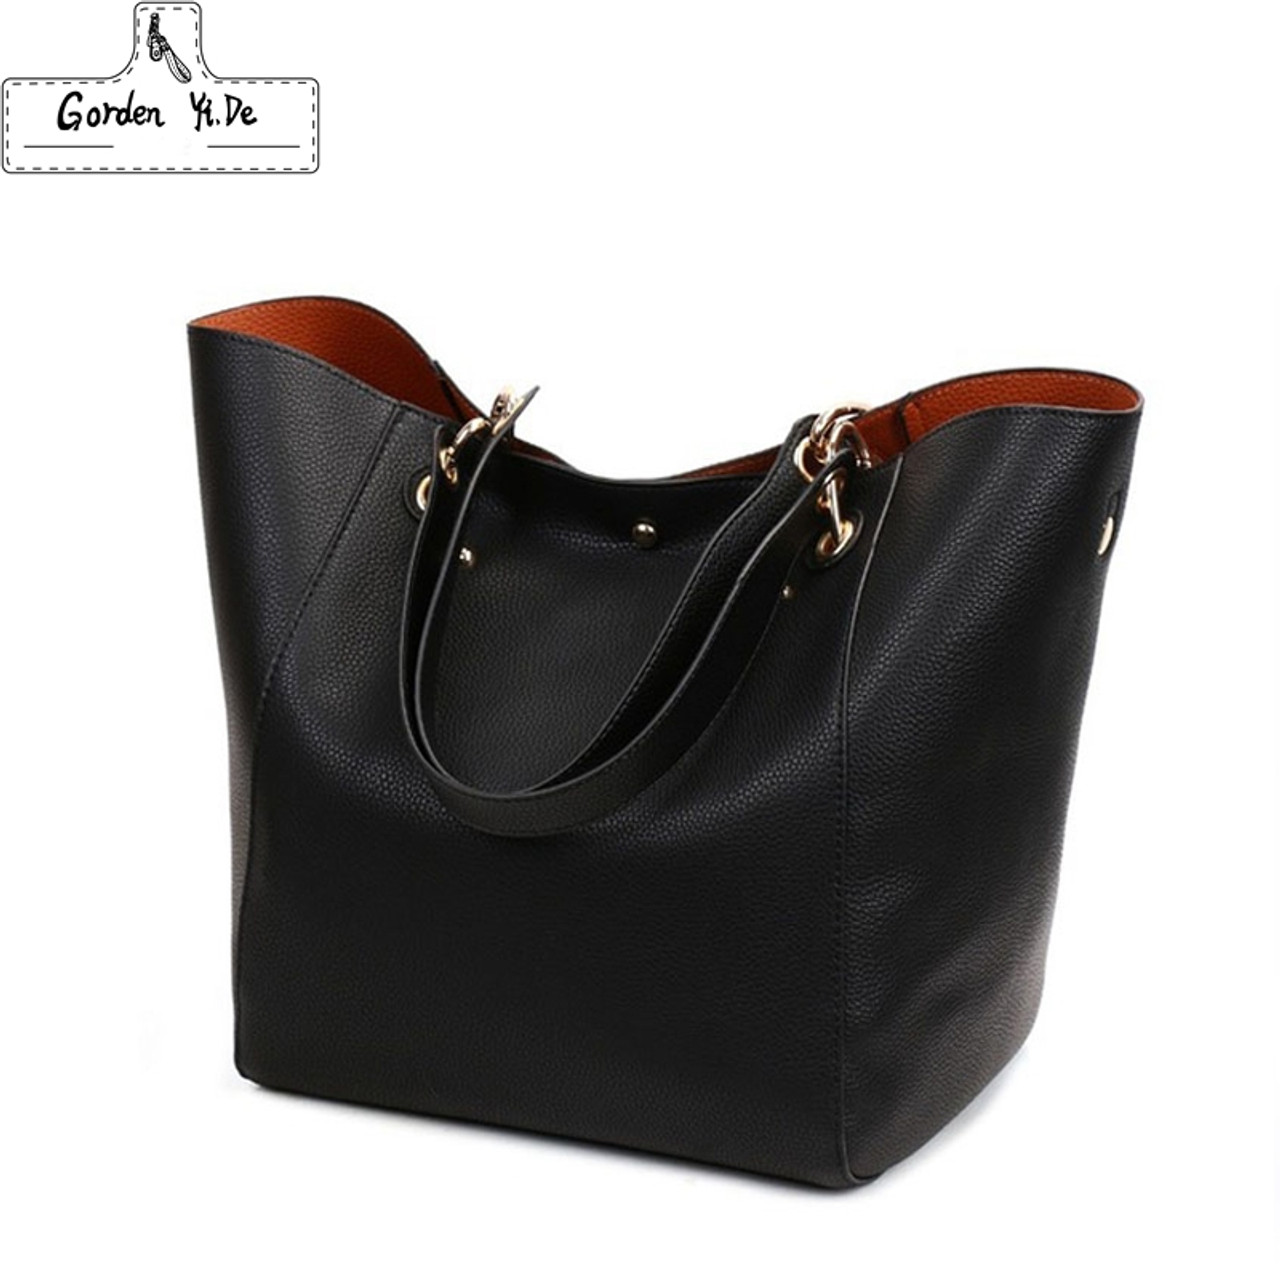 215a1d3bfd32 Genuine leather Women handbags 2019 New Design Women Bucket Bags Vintage Large  Female Shoulder Bags bolsa ...